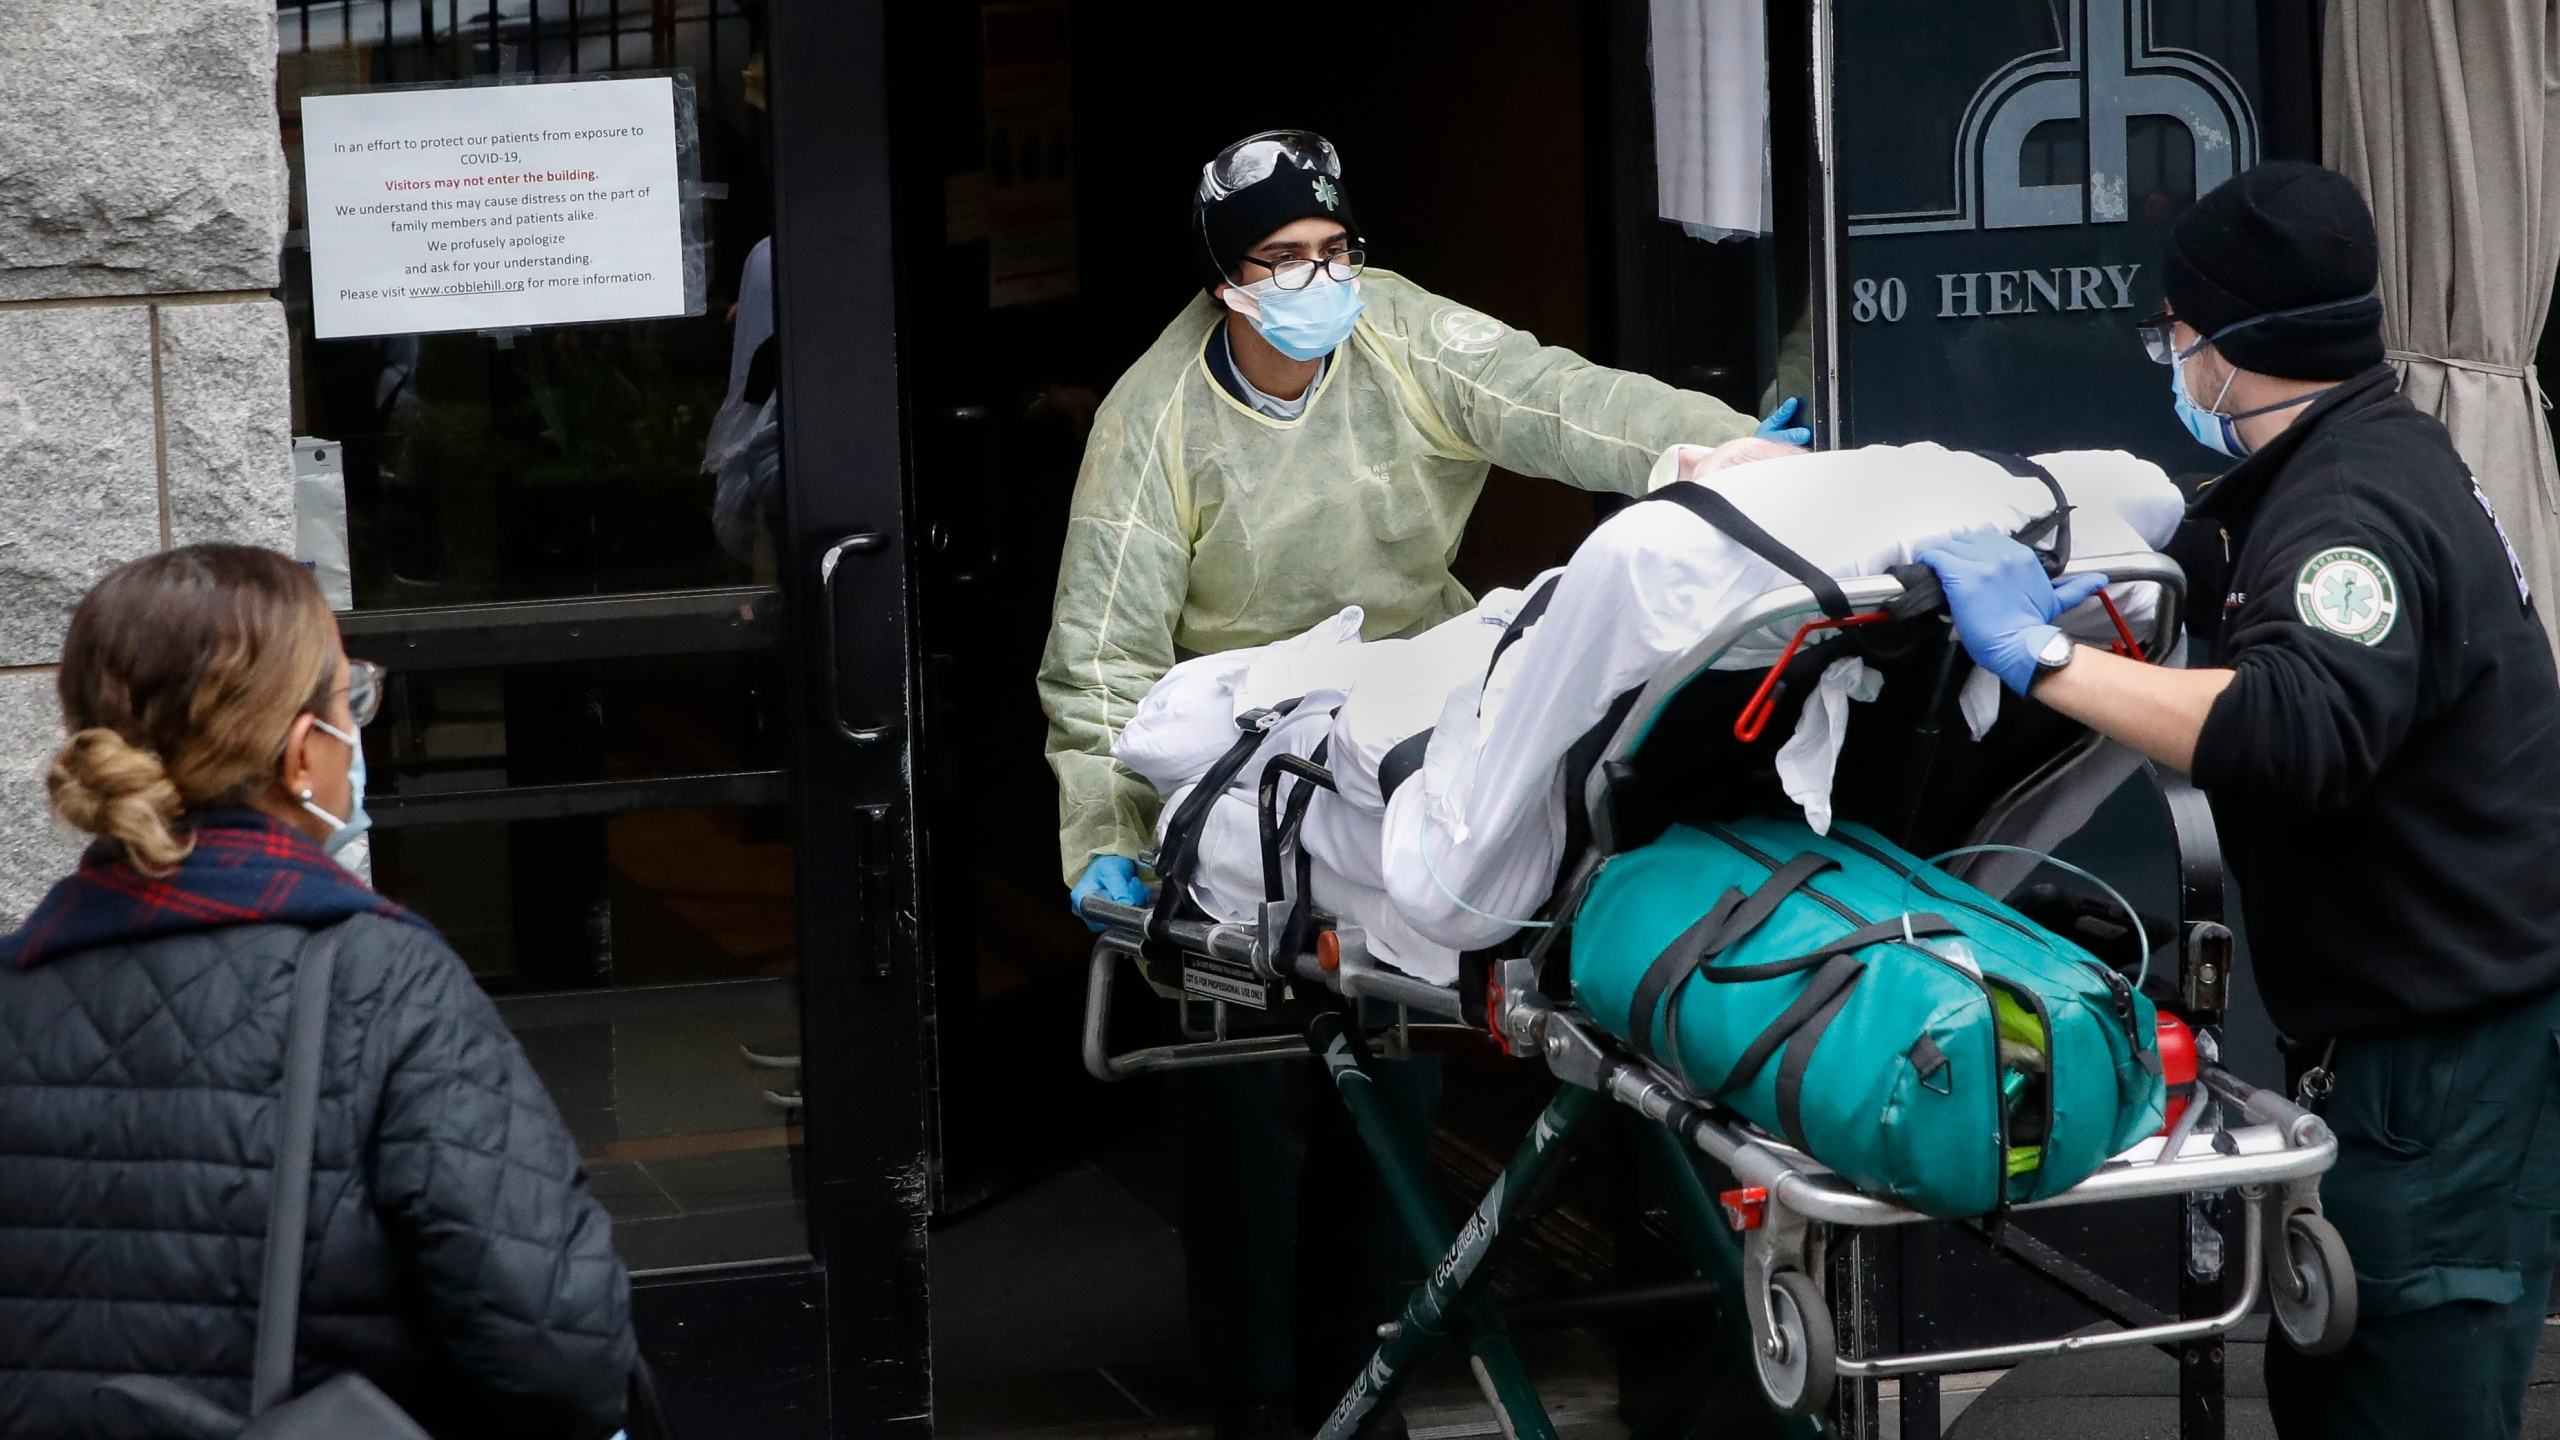 A patient is wheeled into Cobble Hill Health Center by emergency medical workers in Brooklyn